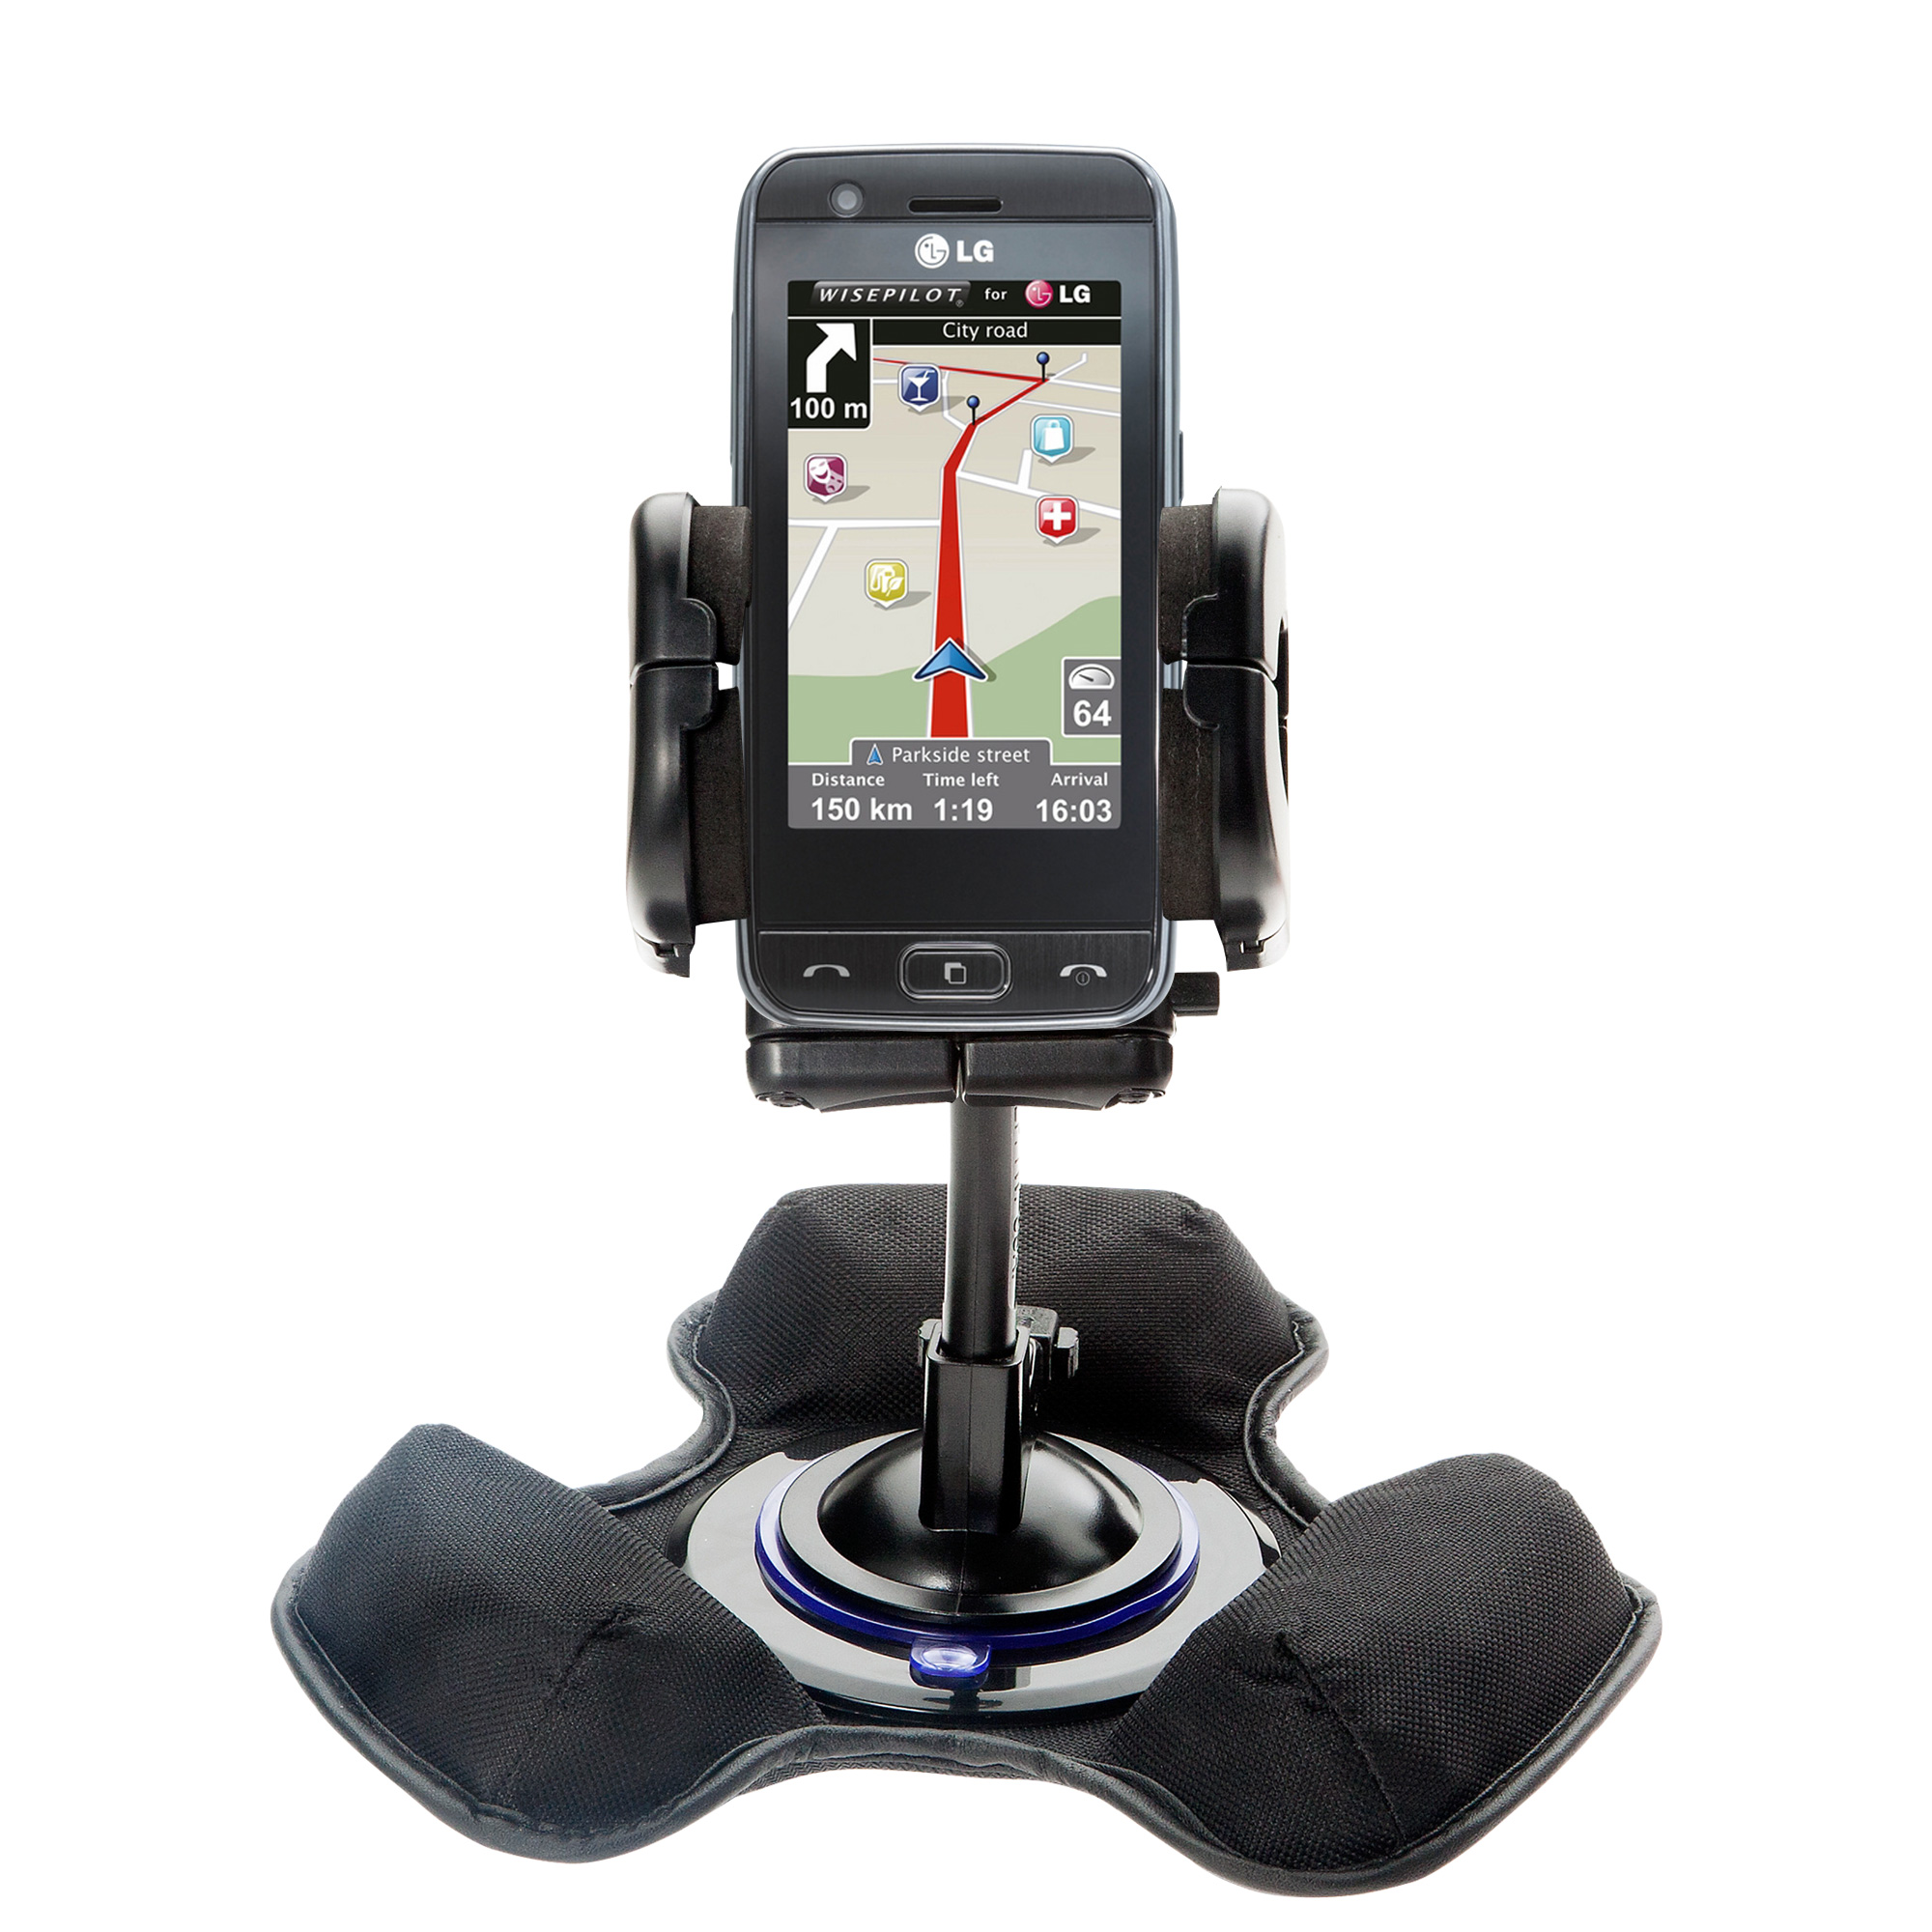 Dash and Windshield Holder compatible with the LG GT505